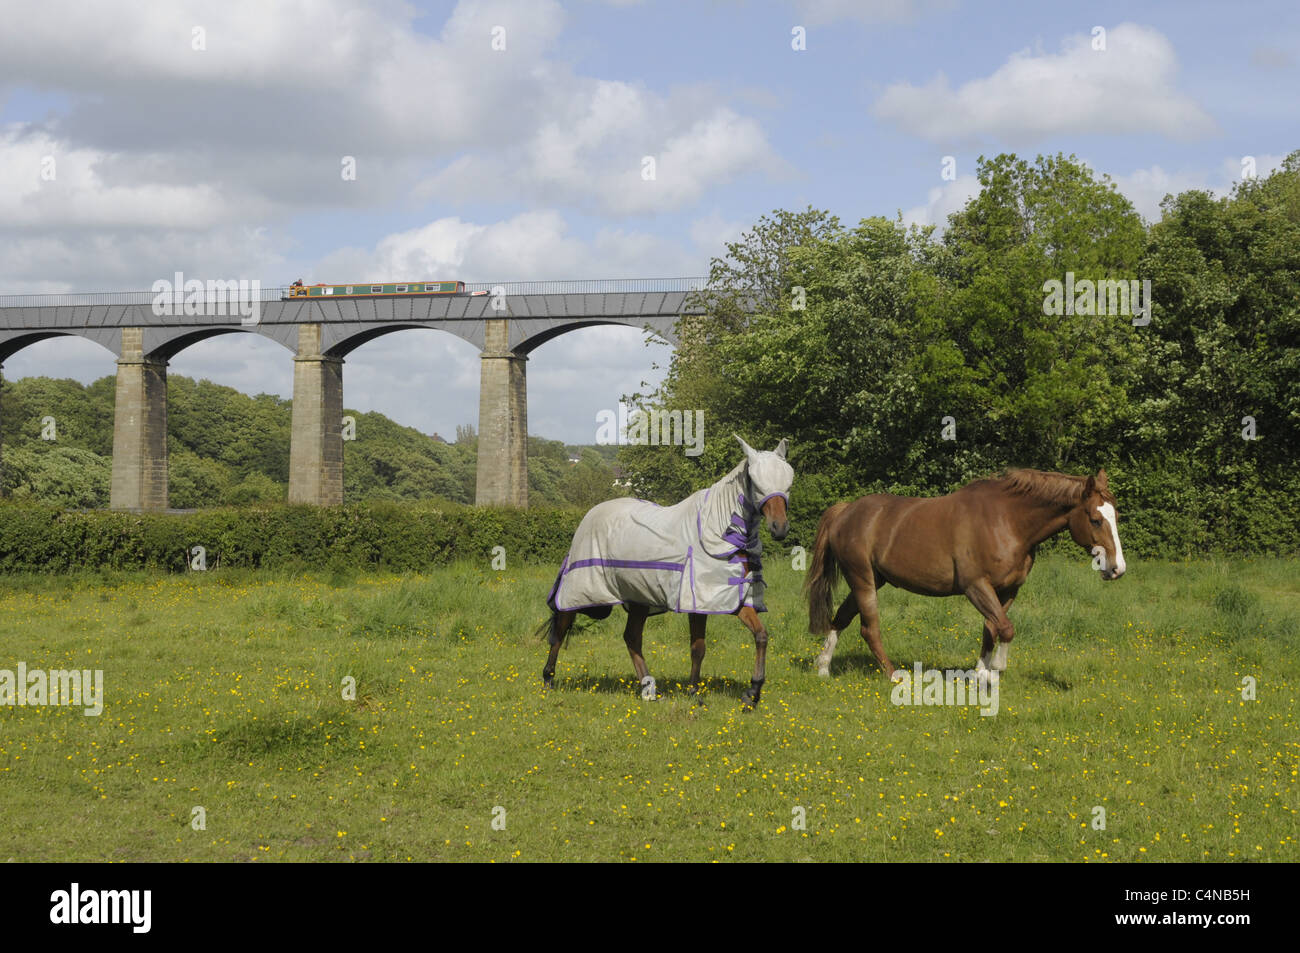 Horses with Pontycysyllte aquaduct in the background. - Stock Image